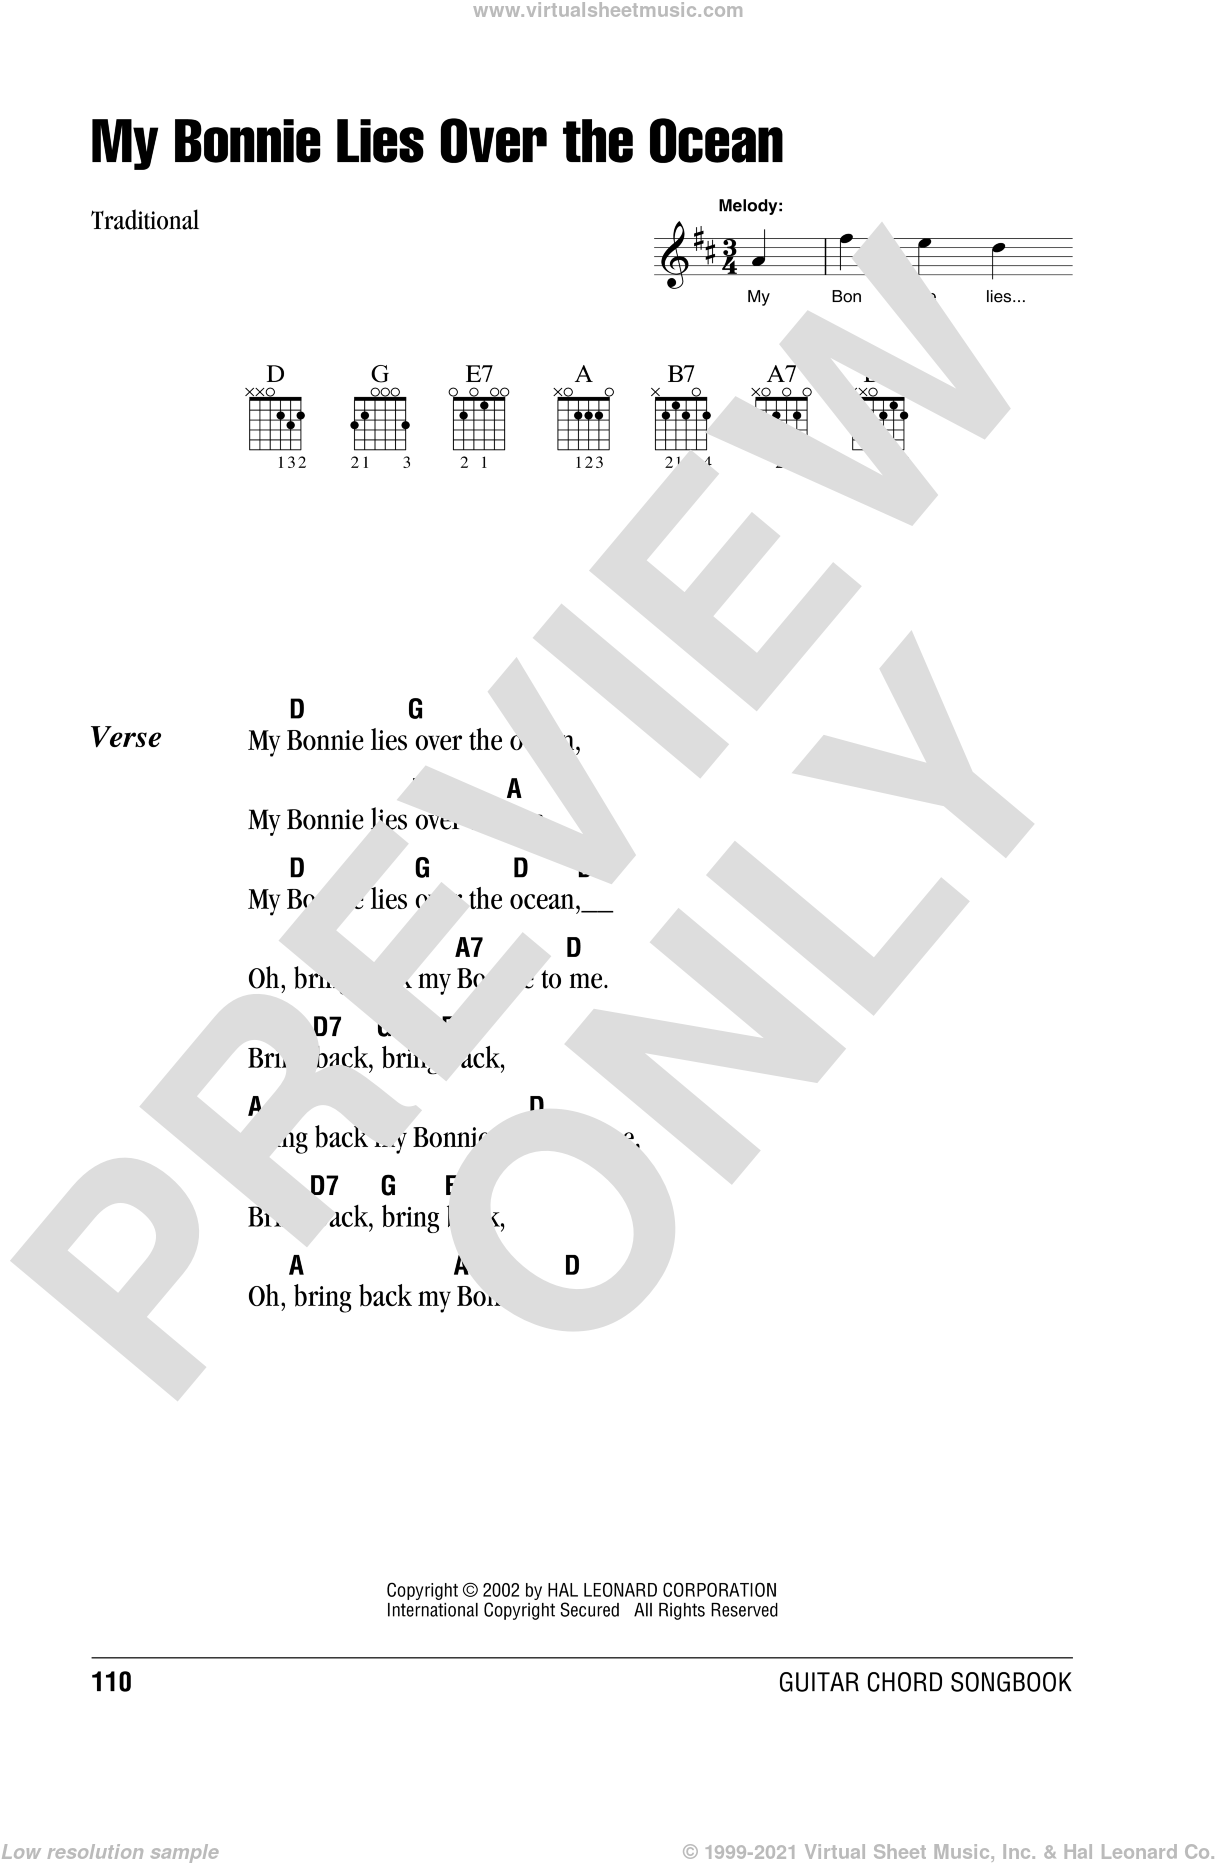 My Bonnie Lies Over The Ocean sheet music for guitar (chords, lyrics, melody)